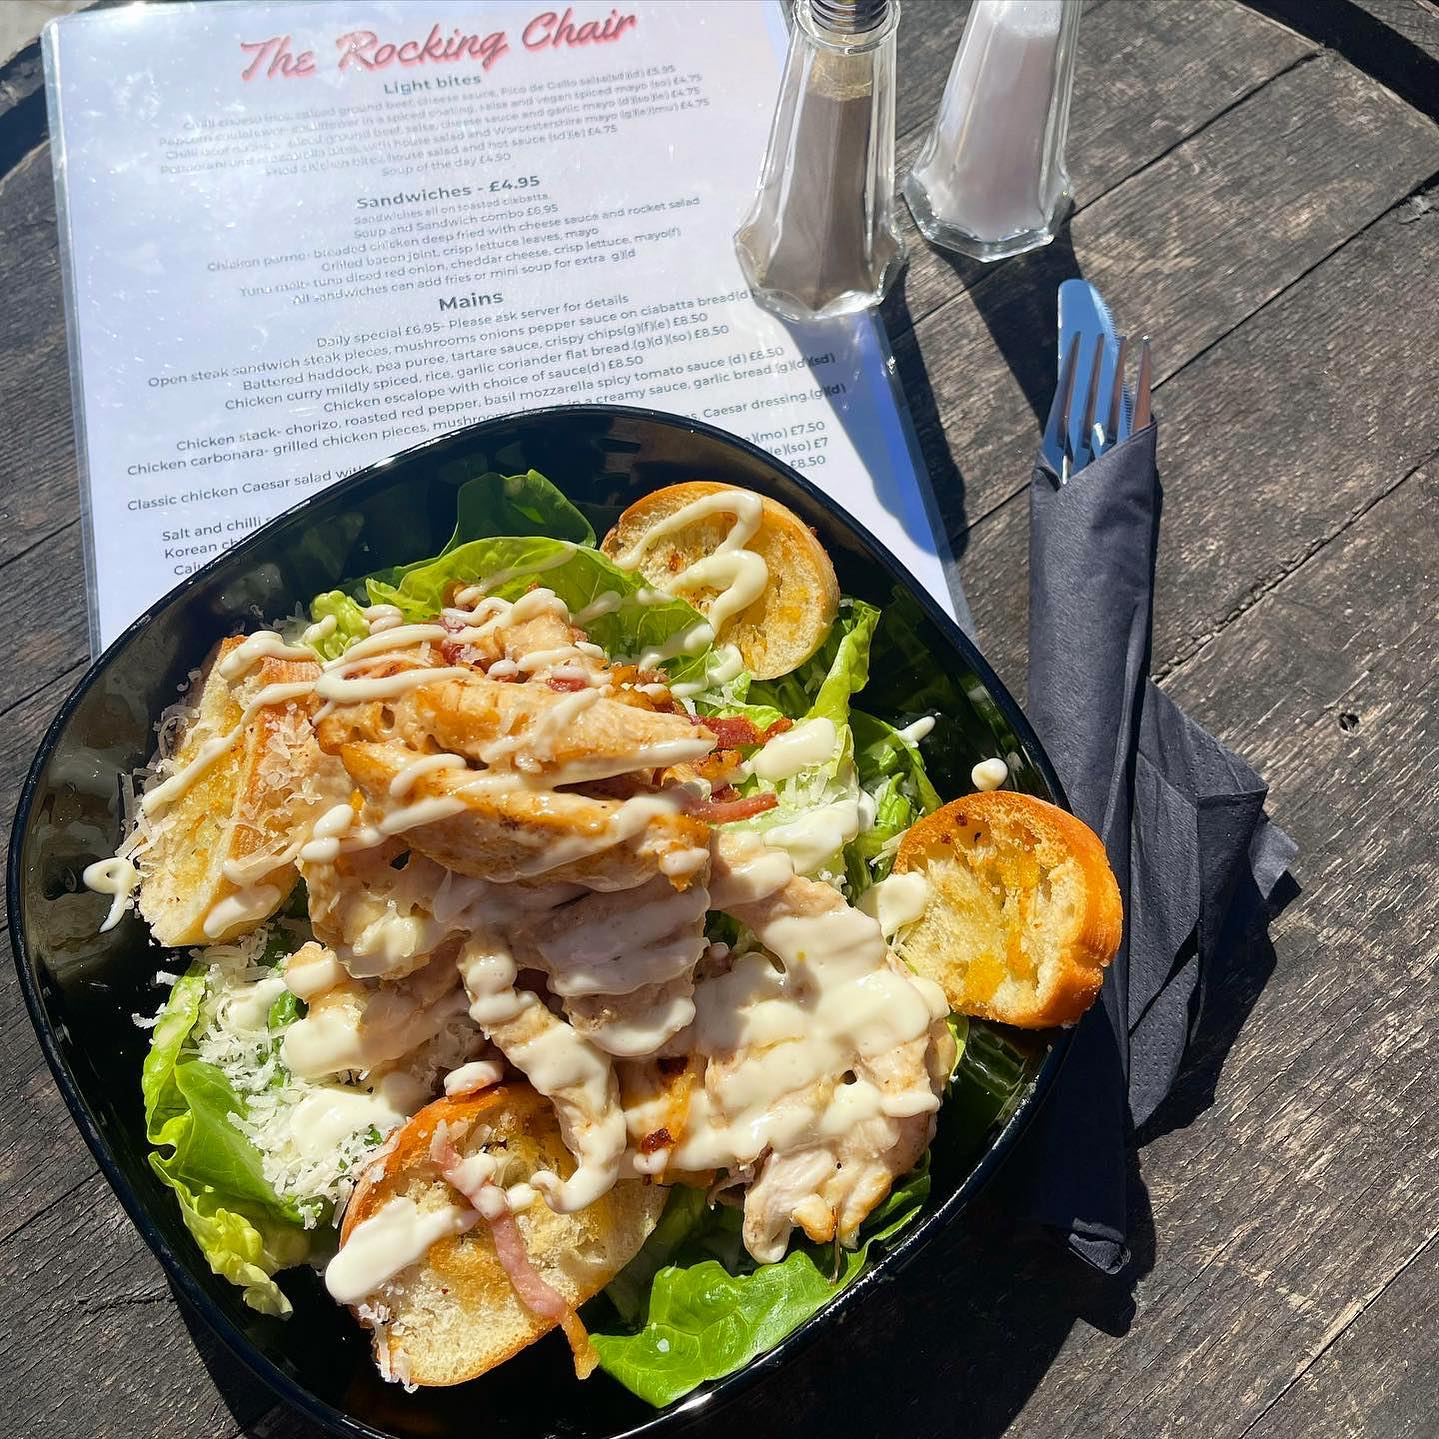 You can't beat a Caesar salad in the summer! 🥗Join us for some delicious mid week lunch or dinner! 🌭Serving from 12-8pm today!